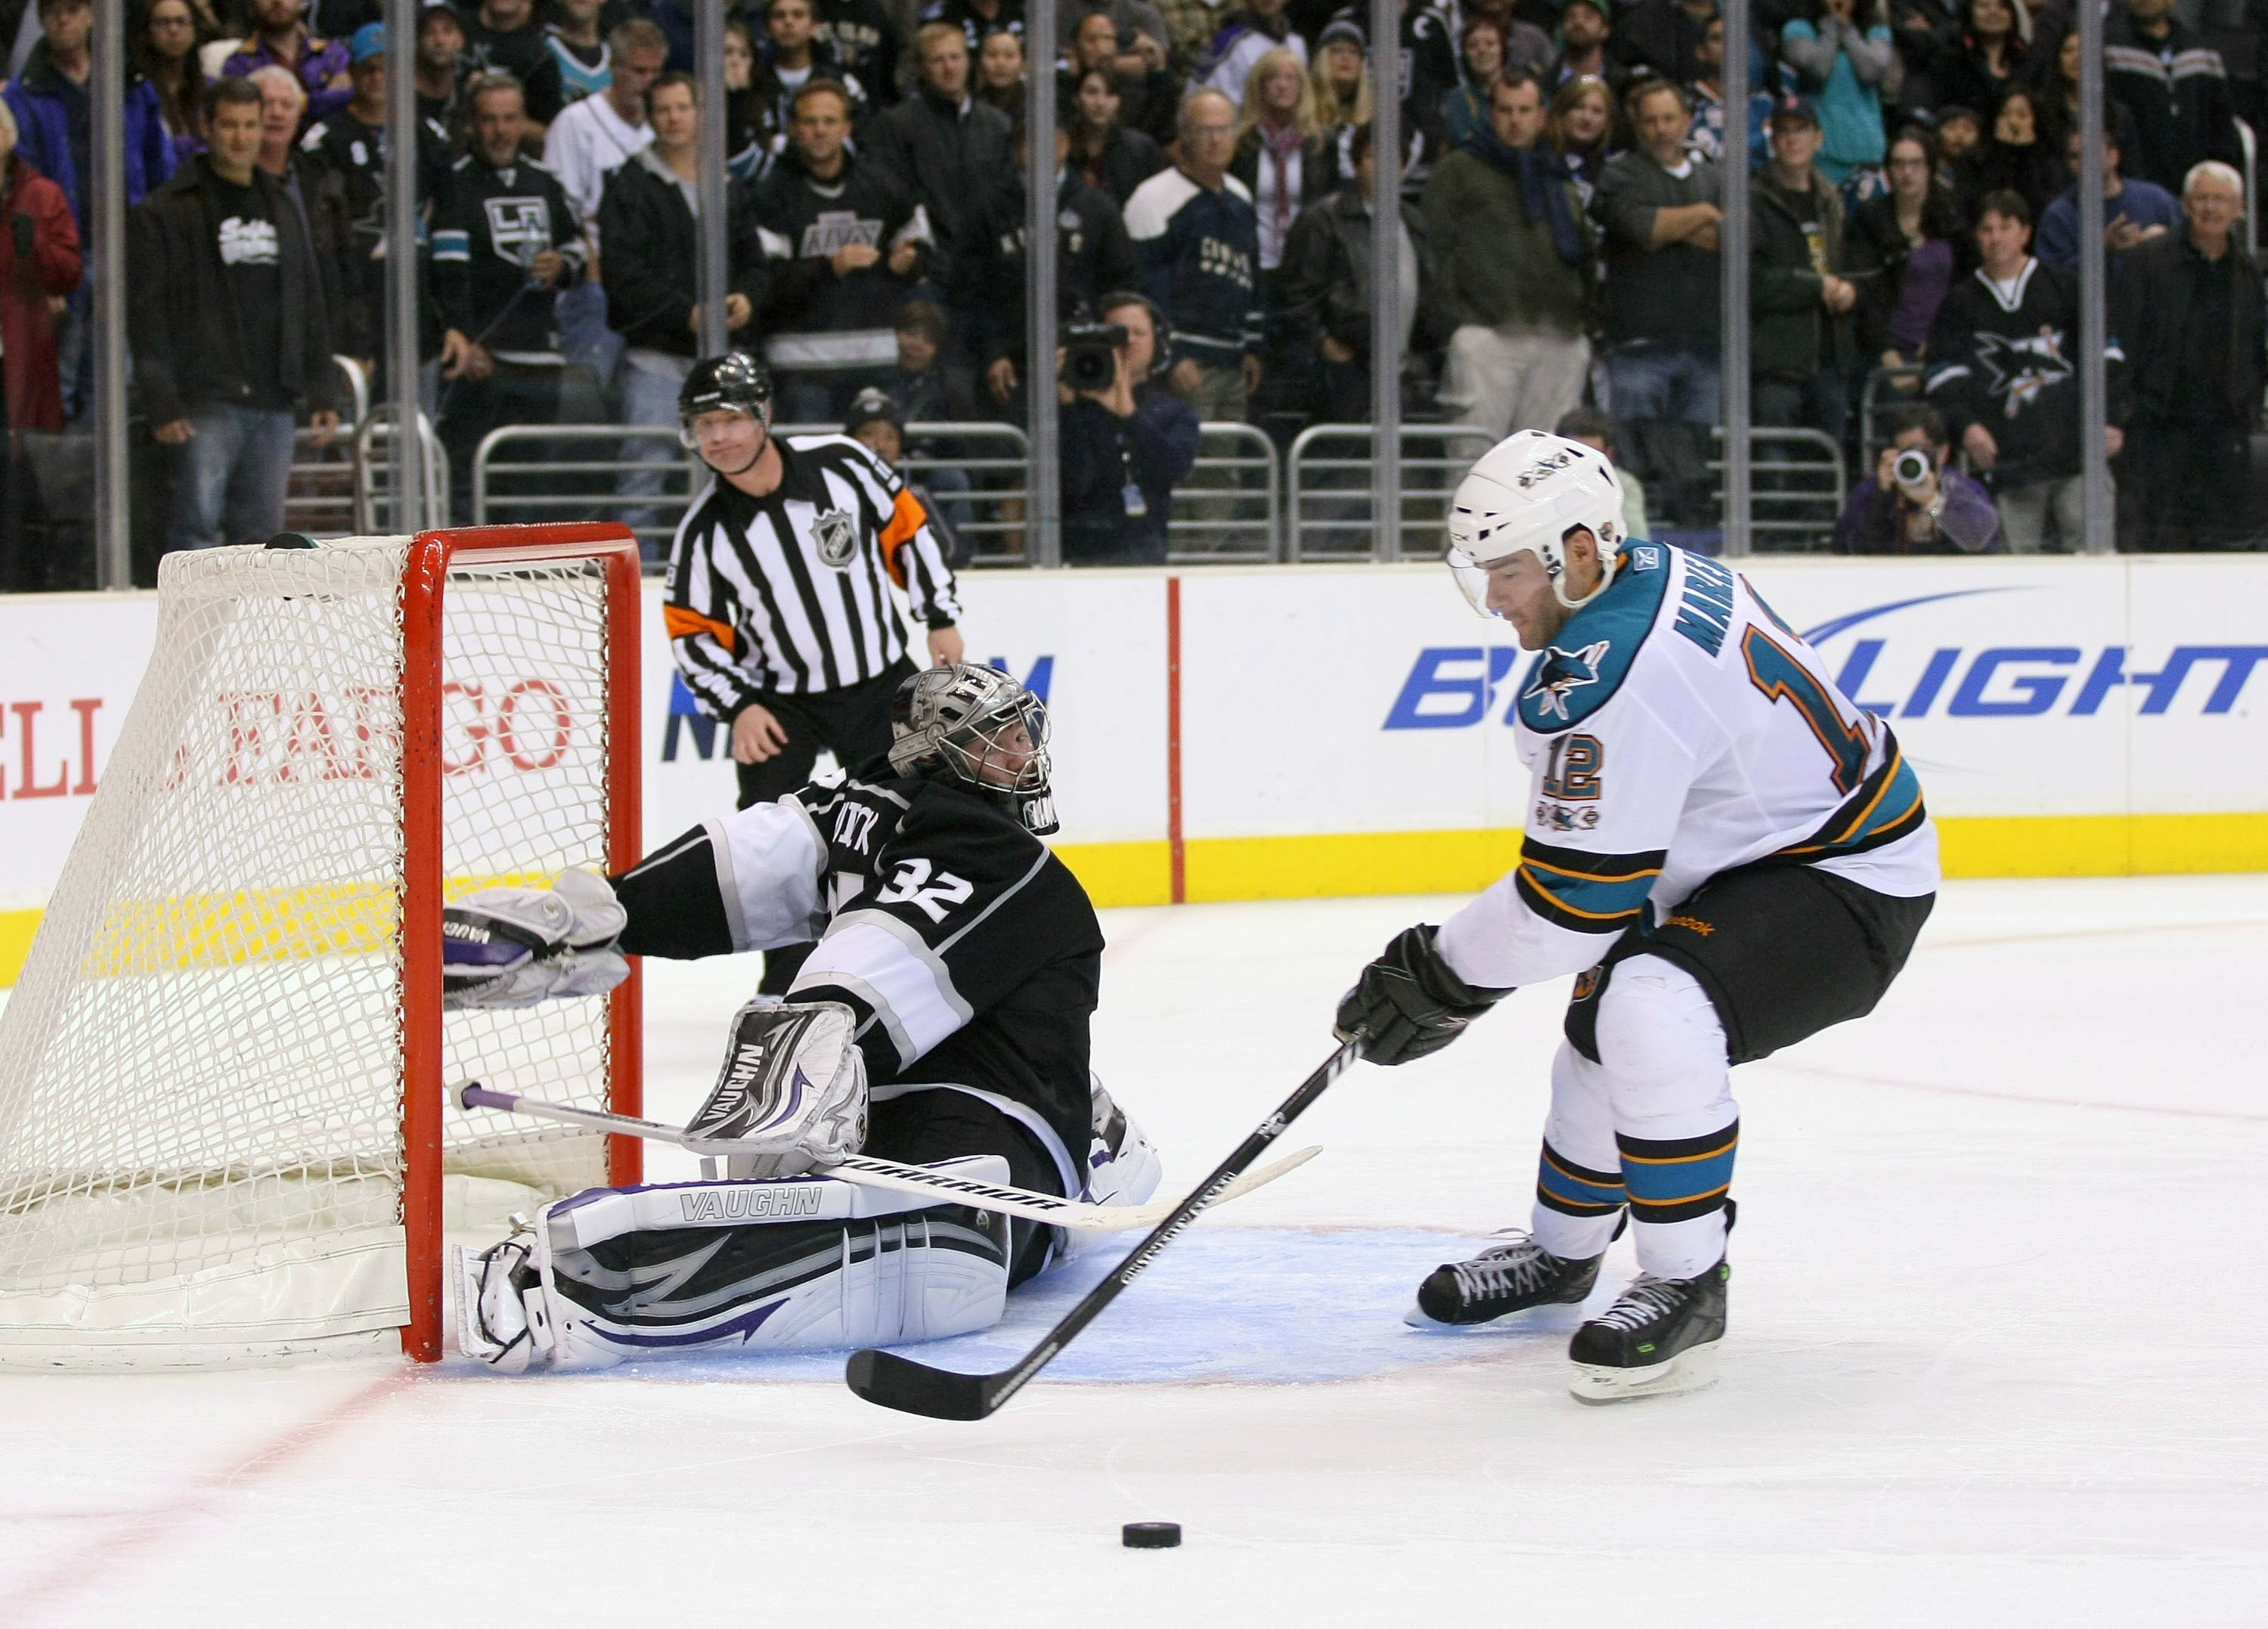 LOS ANGELES, CA - MARCH 24:  Goaltender Jonathan Quick #32 of the Los Angeles Kings slides out his right leg pad to defend the shot as Patrick Marleau #12 of the San Jose Sharks loses control of the puck during his shootout attempt in the NHL game at Stap